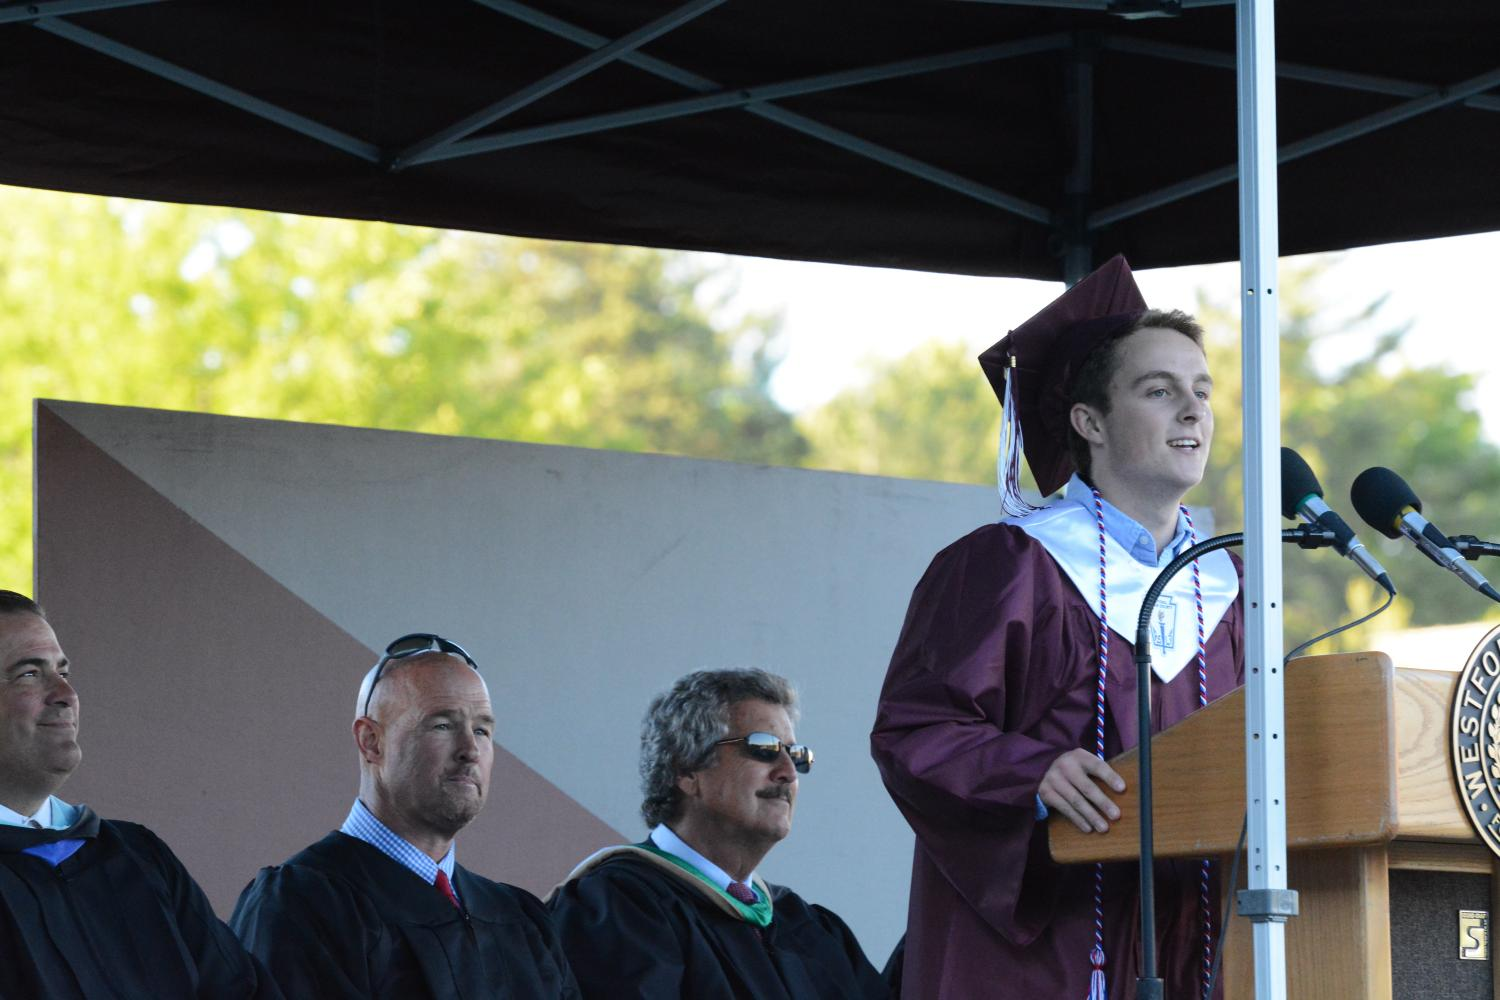 2017+Class+President+Daniel+Koerner+speaks+to+his+peers+for+the+last+time%2C+reflecting+on+his+time+at+WA%2C+and+how+he+learned+to+move+out+of+his+comfort+zone.